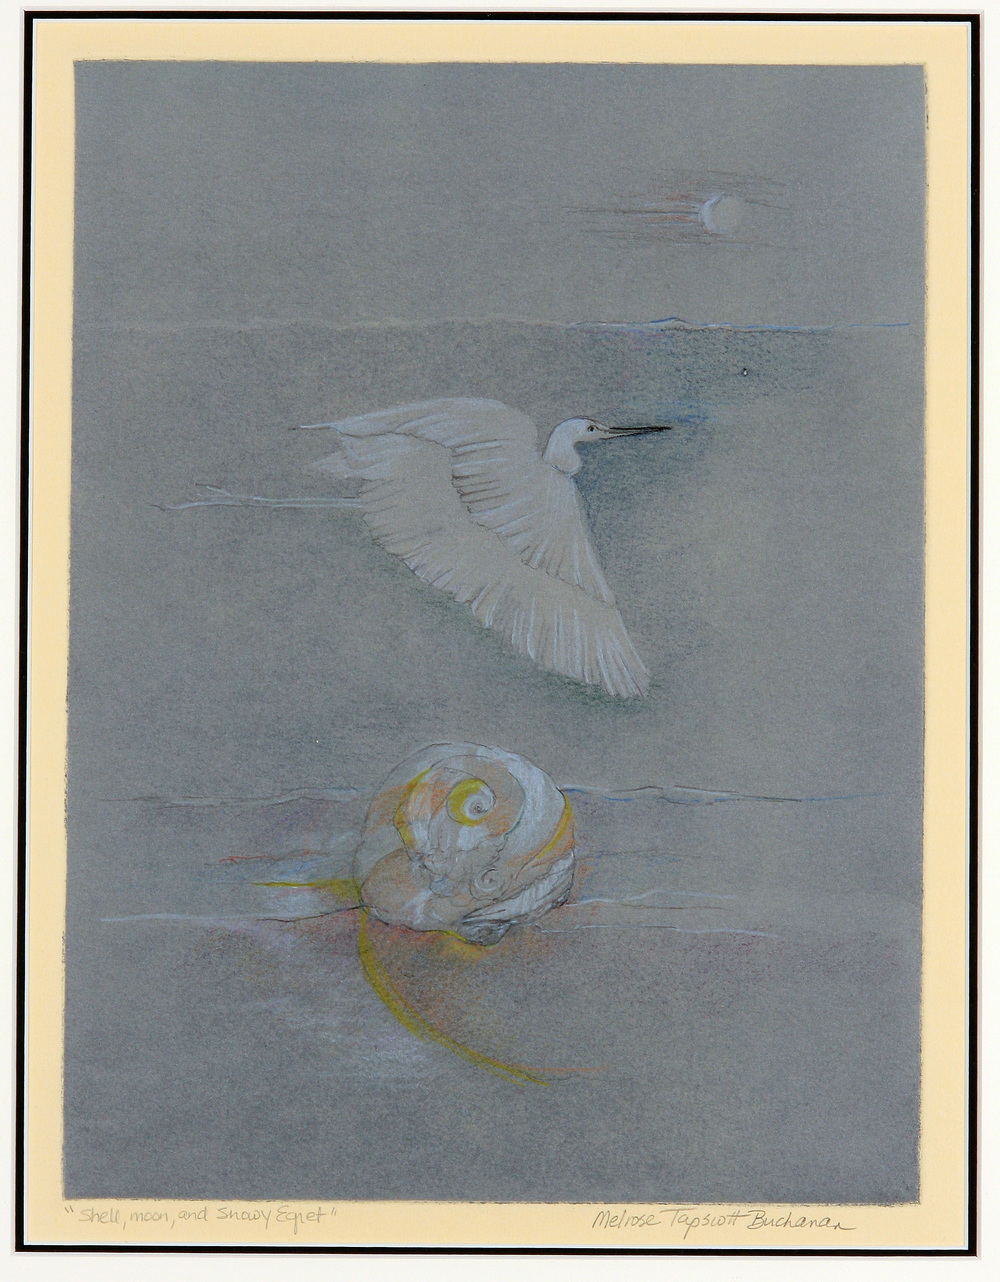 Shell, Moon, and Snowy Egret